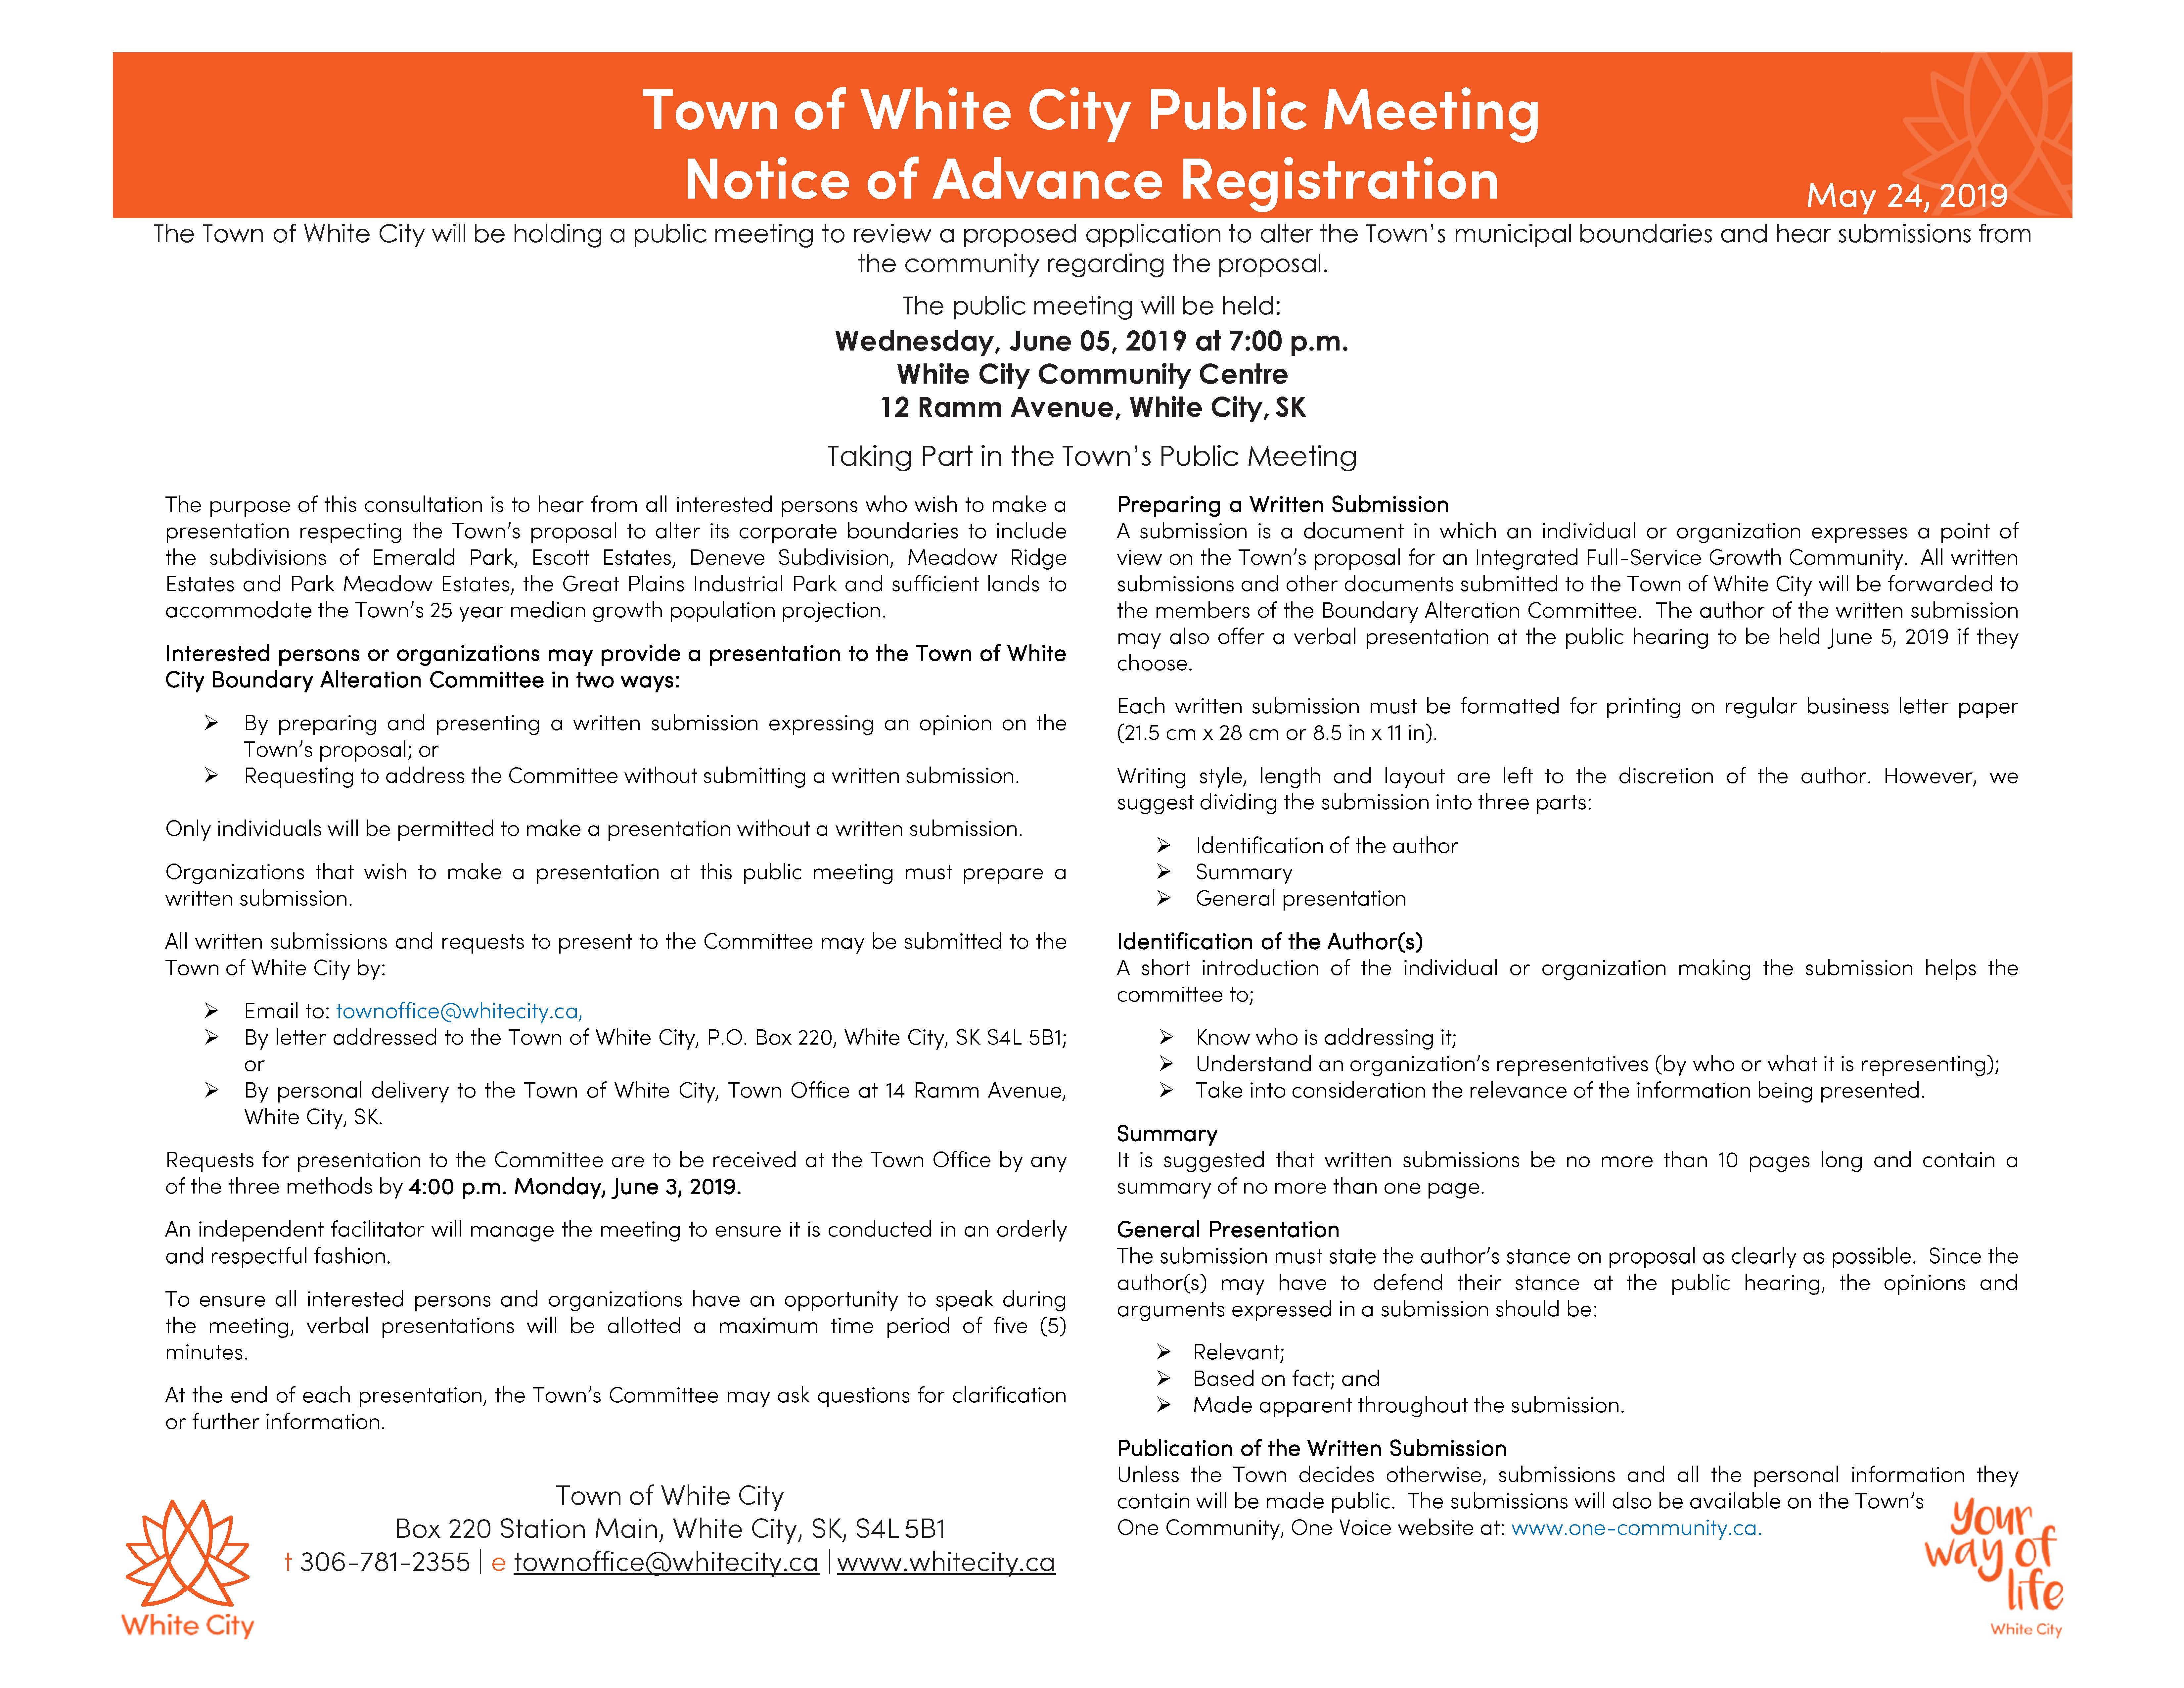 Notice of Advance Registration for Public Meeting on June 5, 2019 - Image 1